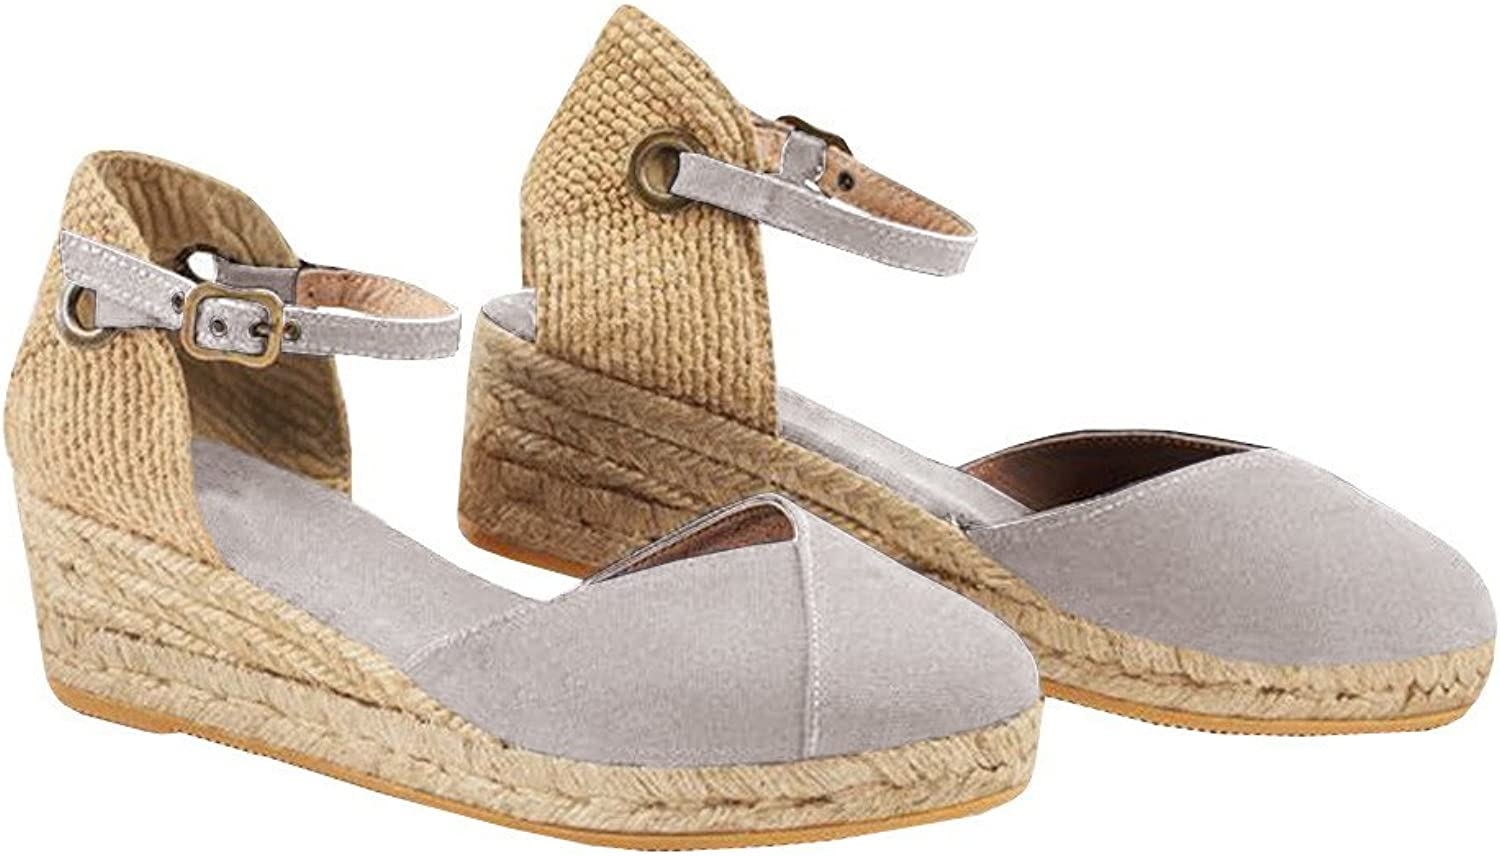 Seraih Womens Wedges shoes Espadrille Canvas Upper Ankle Buckle Braided Sandals shoes